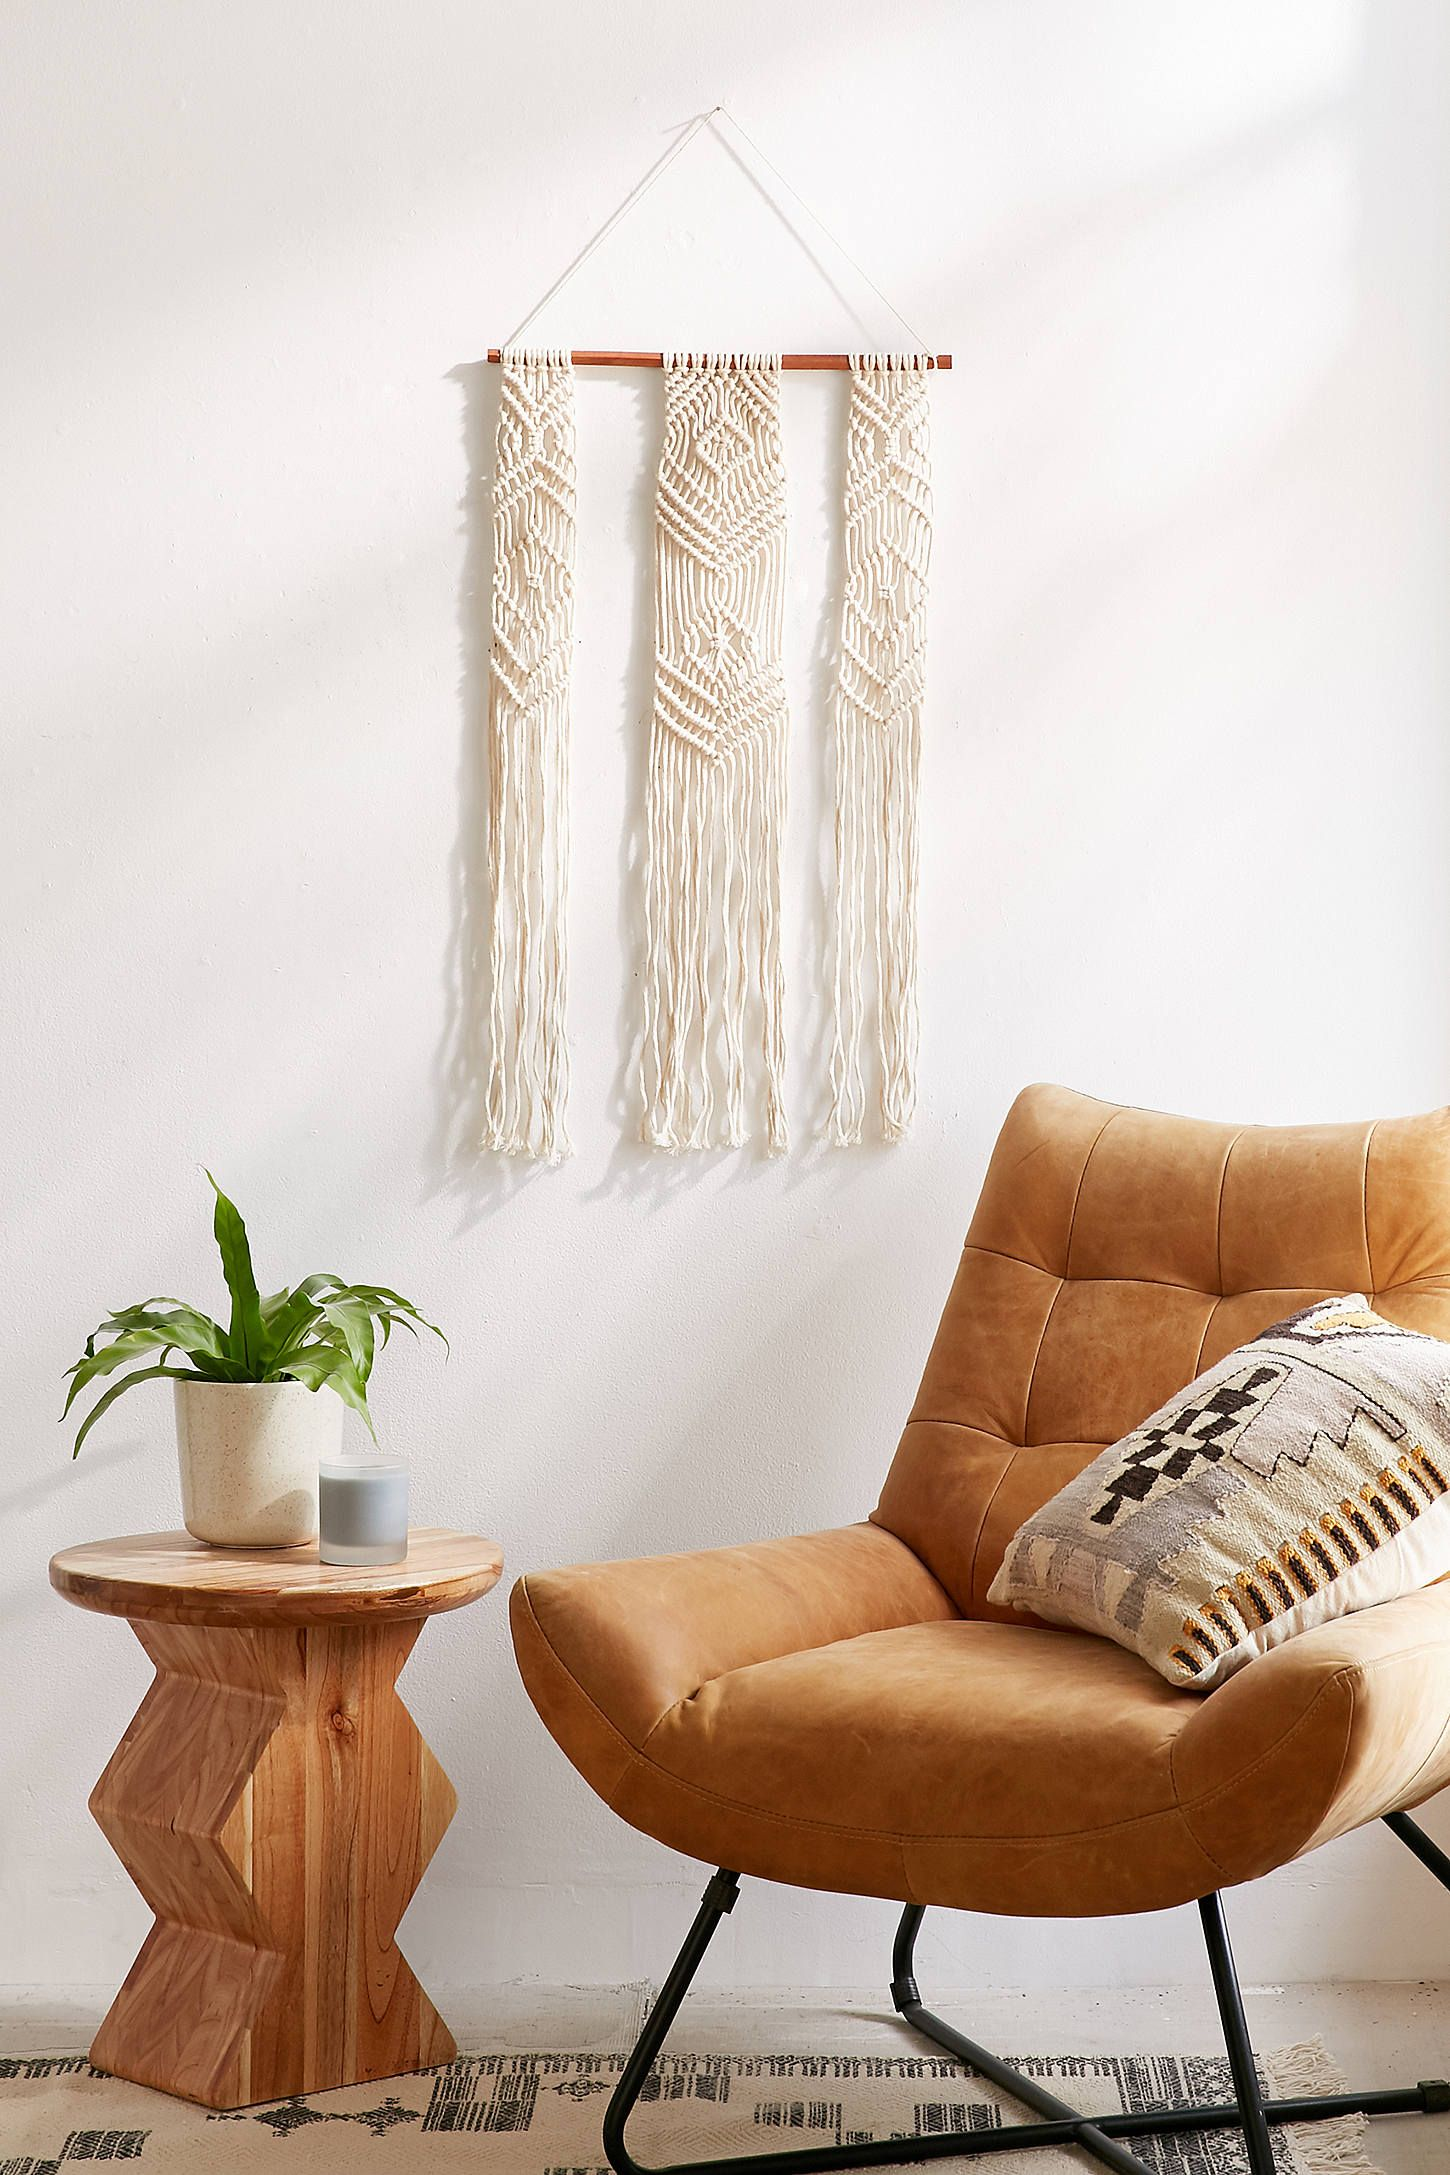 Shop fallon macrame wall hanging at urban outfitters today we carry all the latest styles colors and brands for you to choose from right here